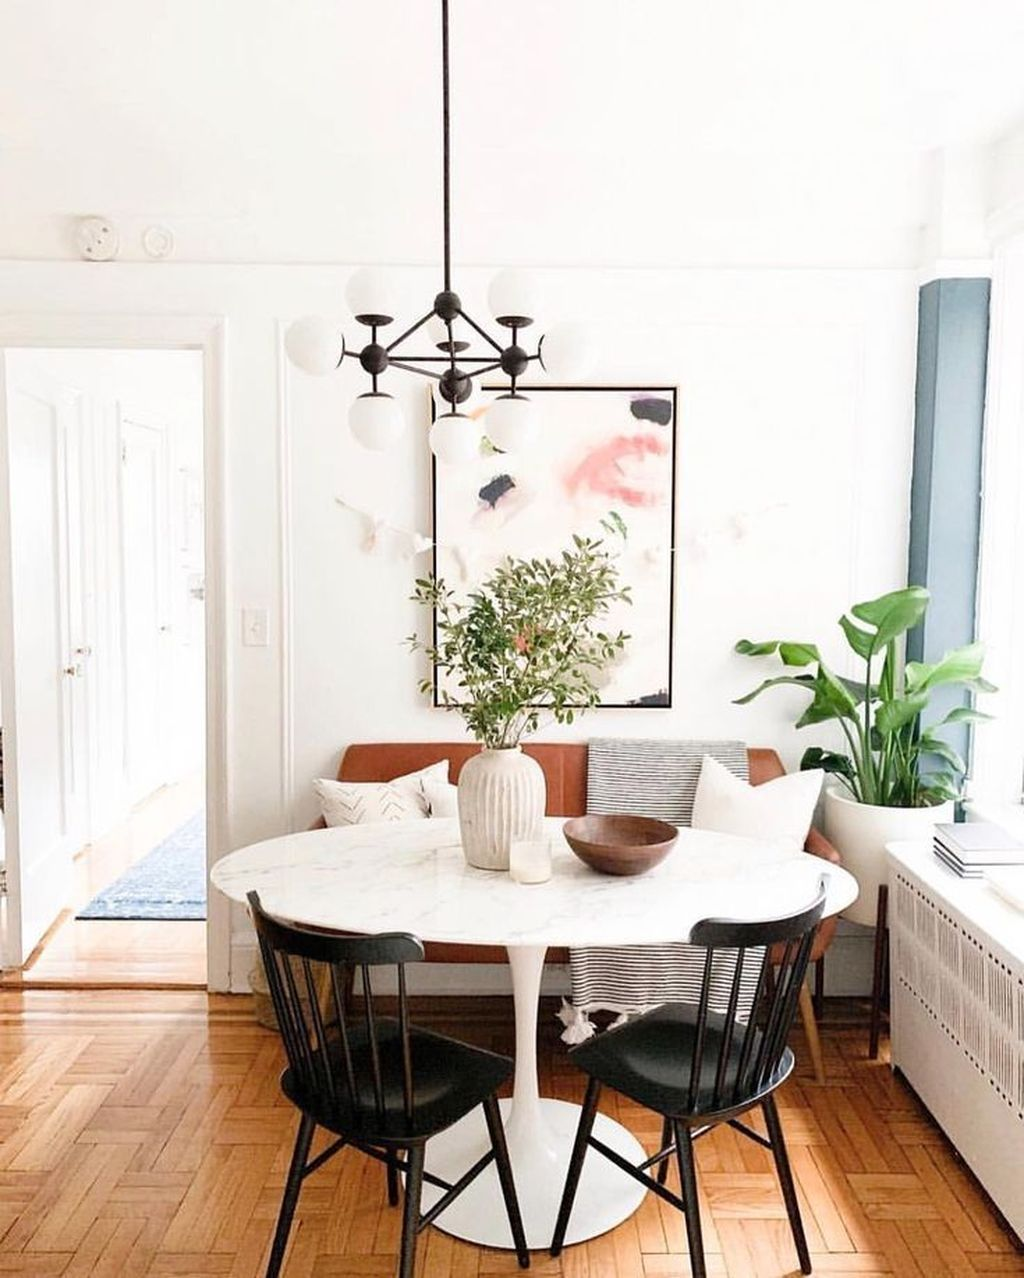 Dining Room Corner Decorating Ideas Space Saving Solutions: Awesome 20+ Amazing Small Dining Room Table Decor Ideas To